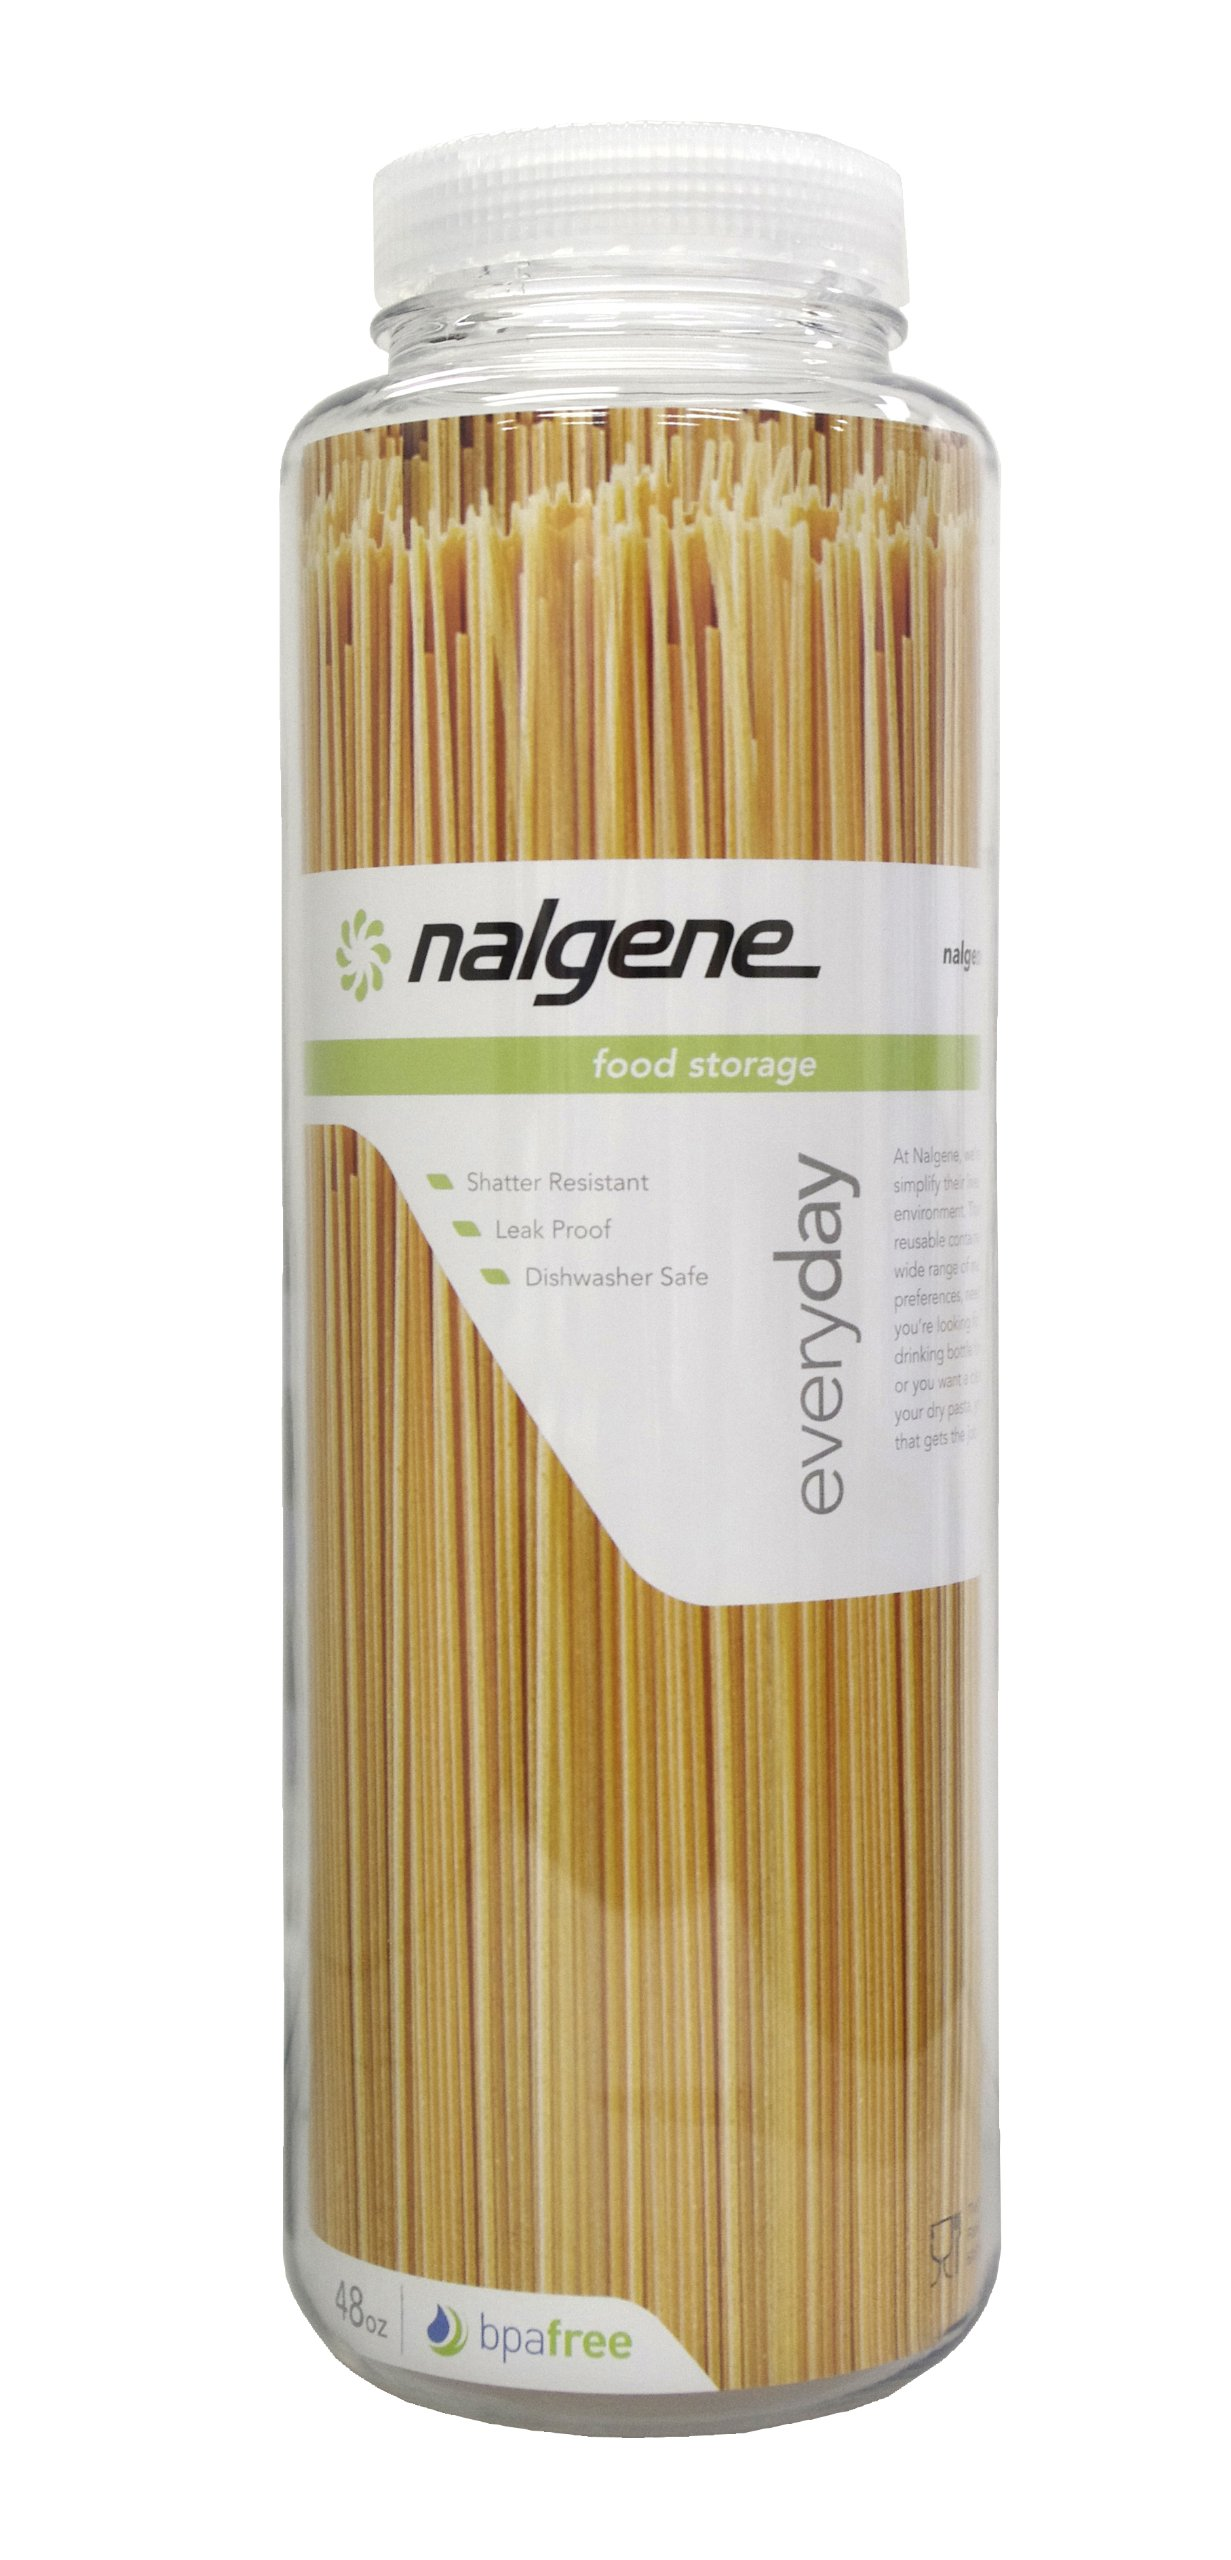 Nalgene Kitchen Storage Wide Mouth, 48-Ounce, Clear